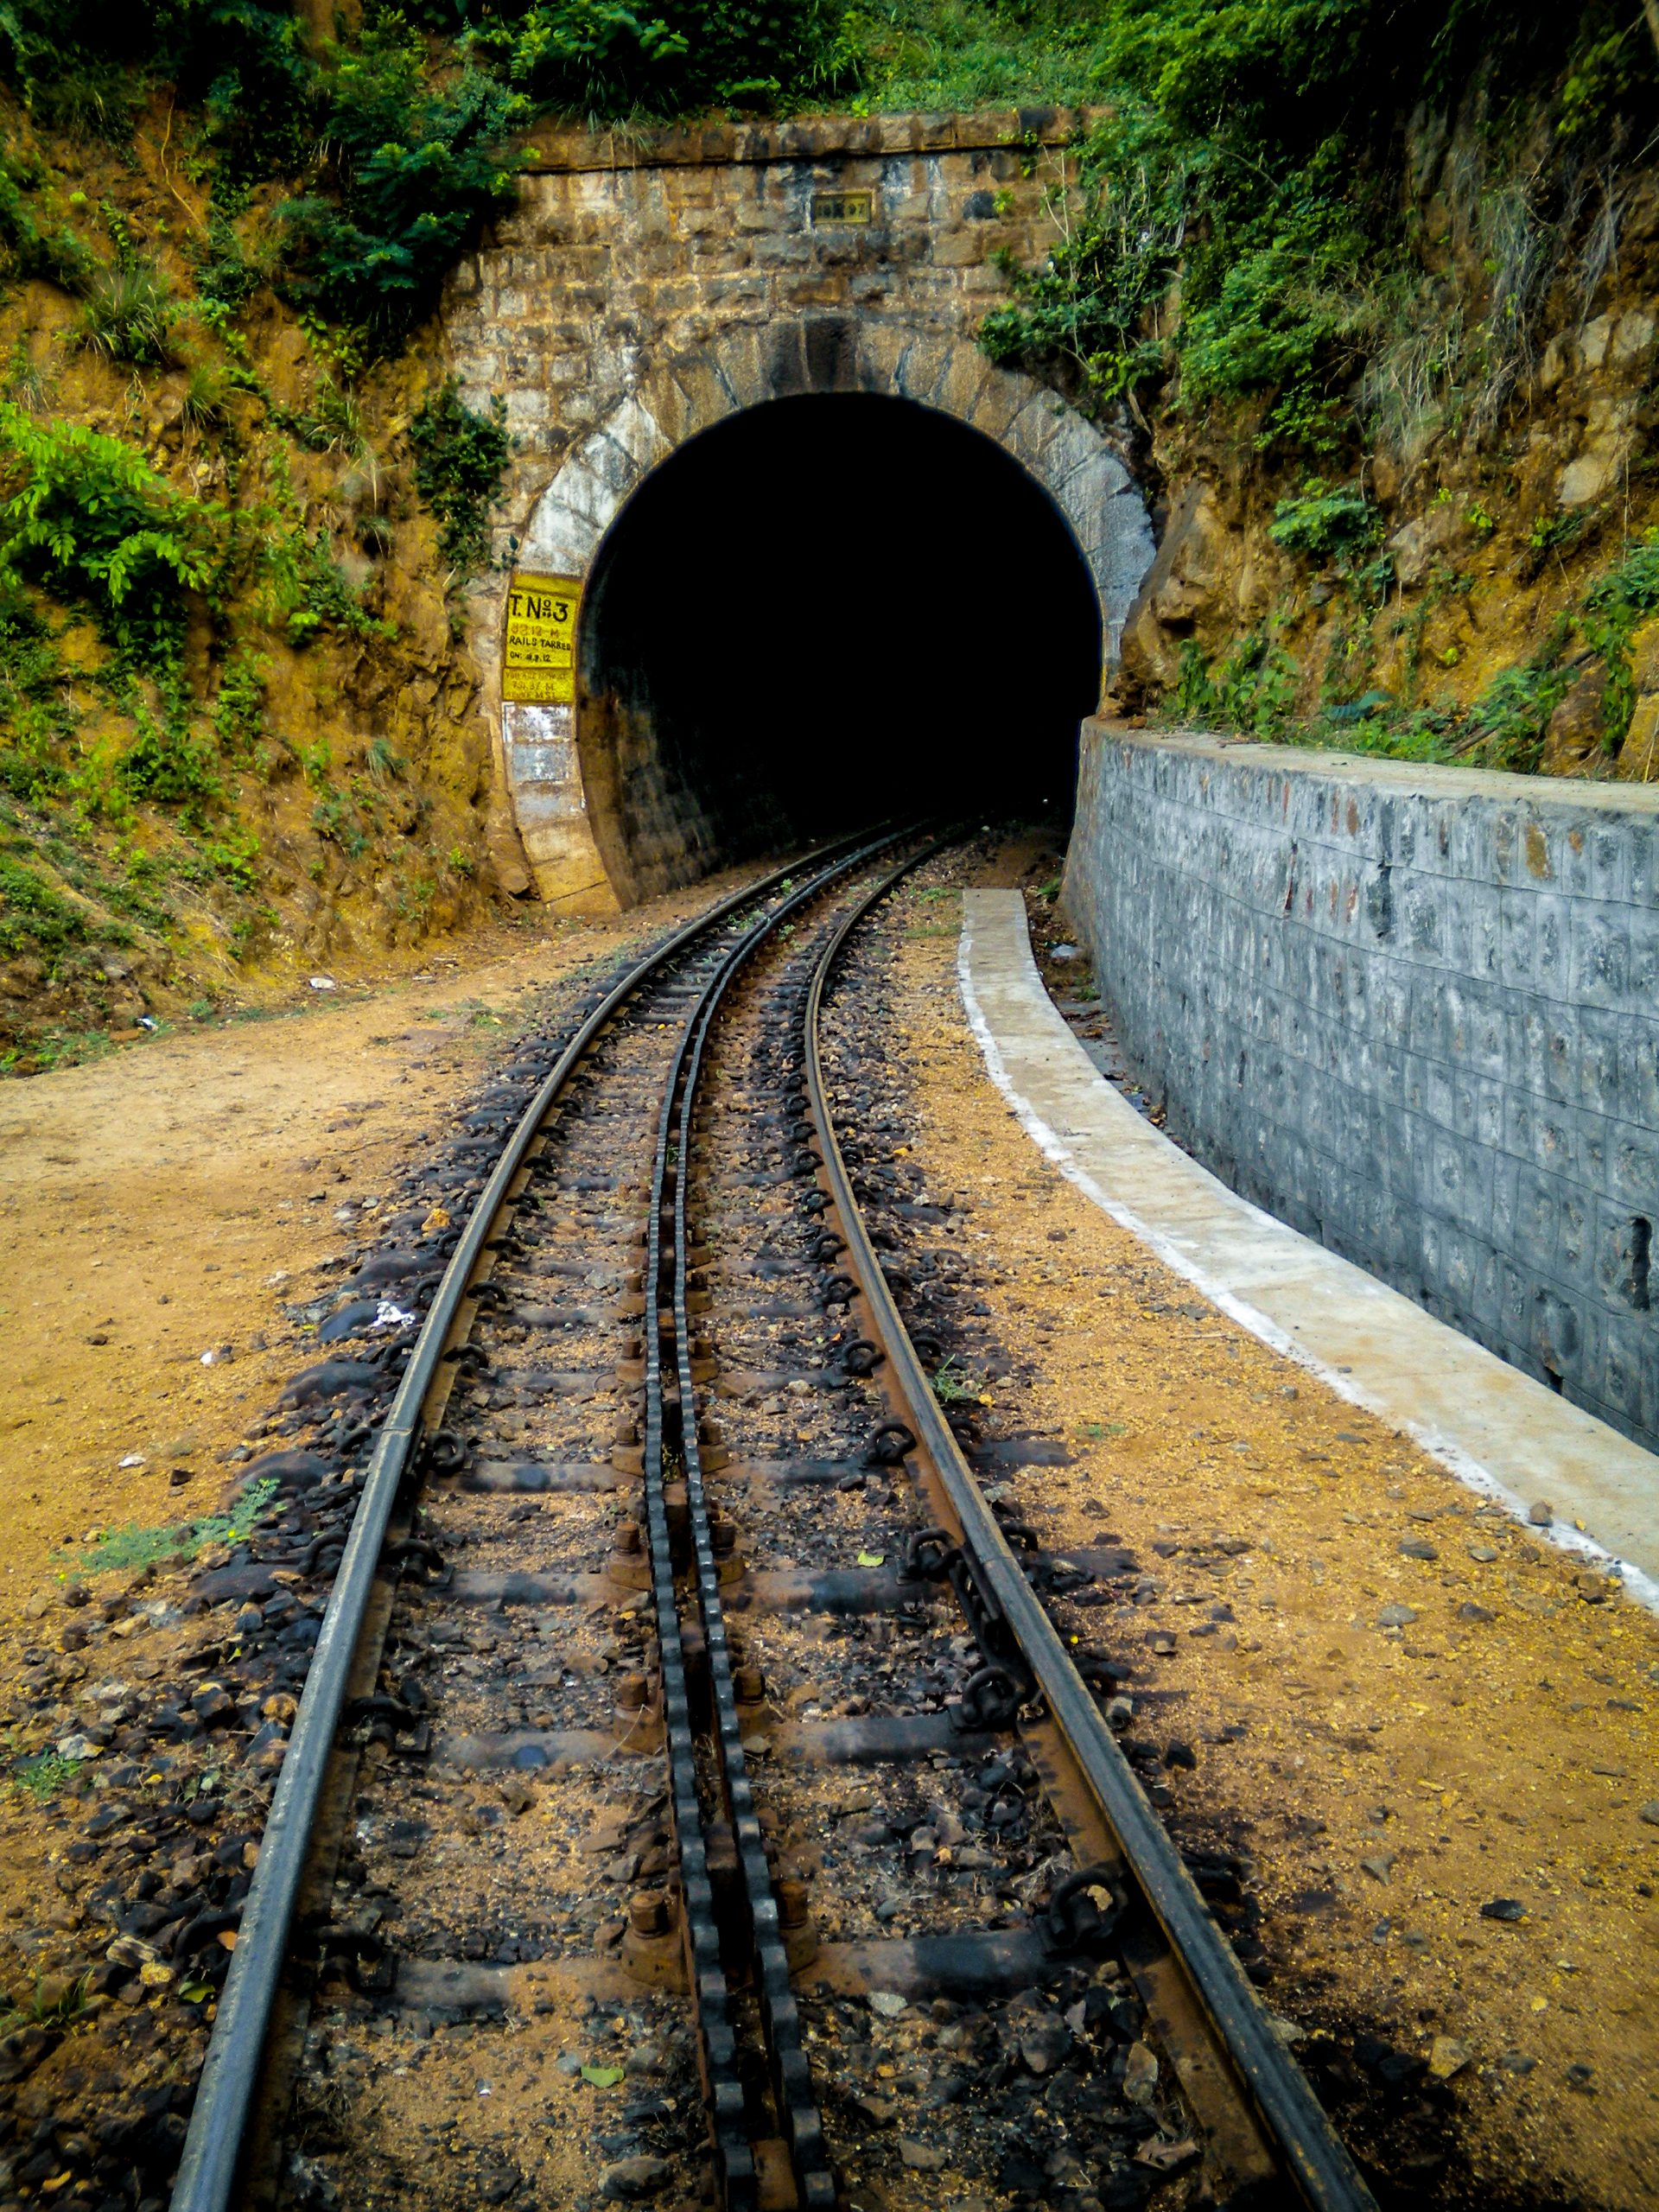 Railway track with tunnel at end - Ooty